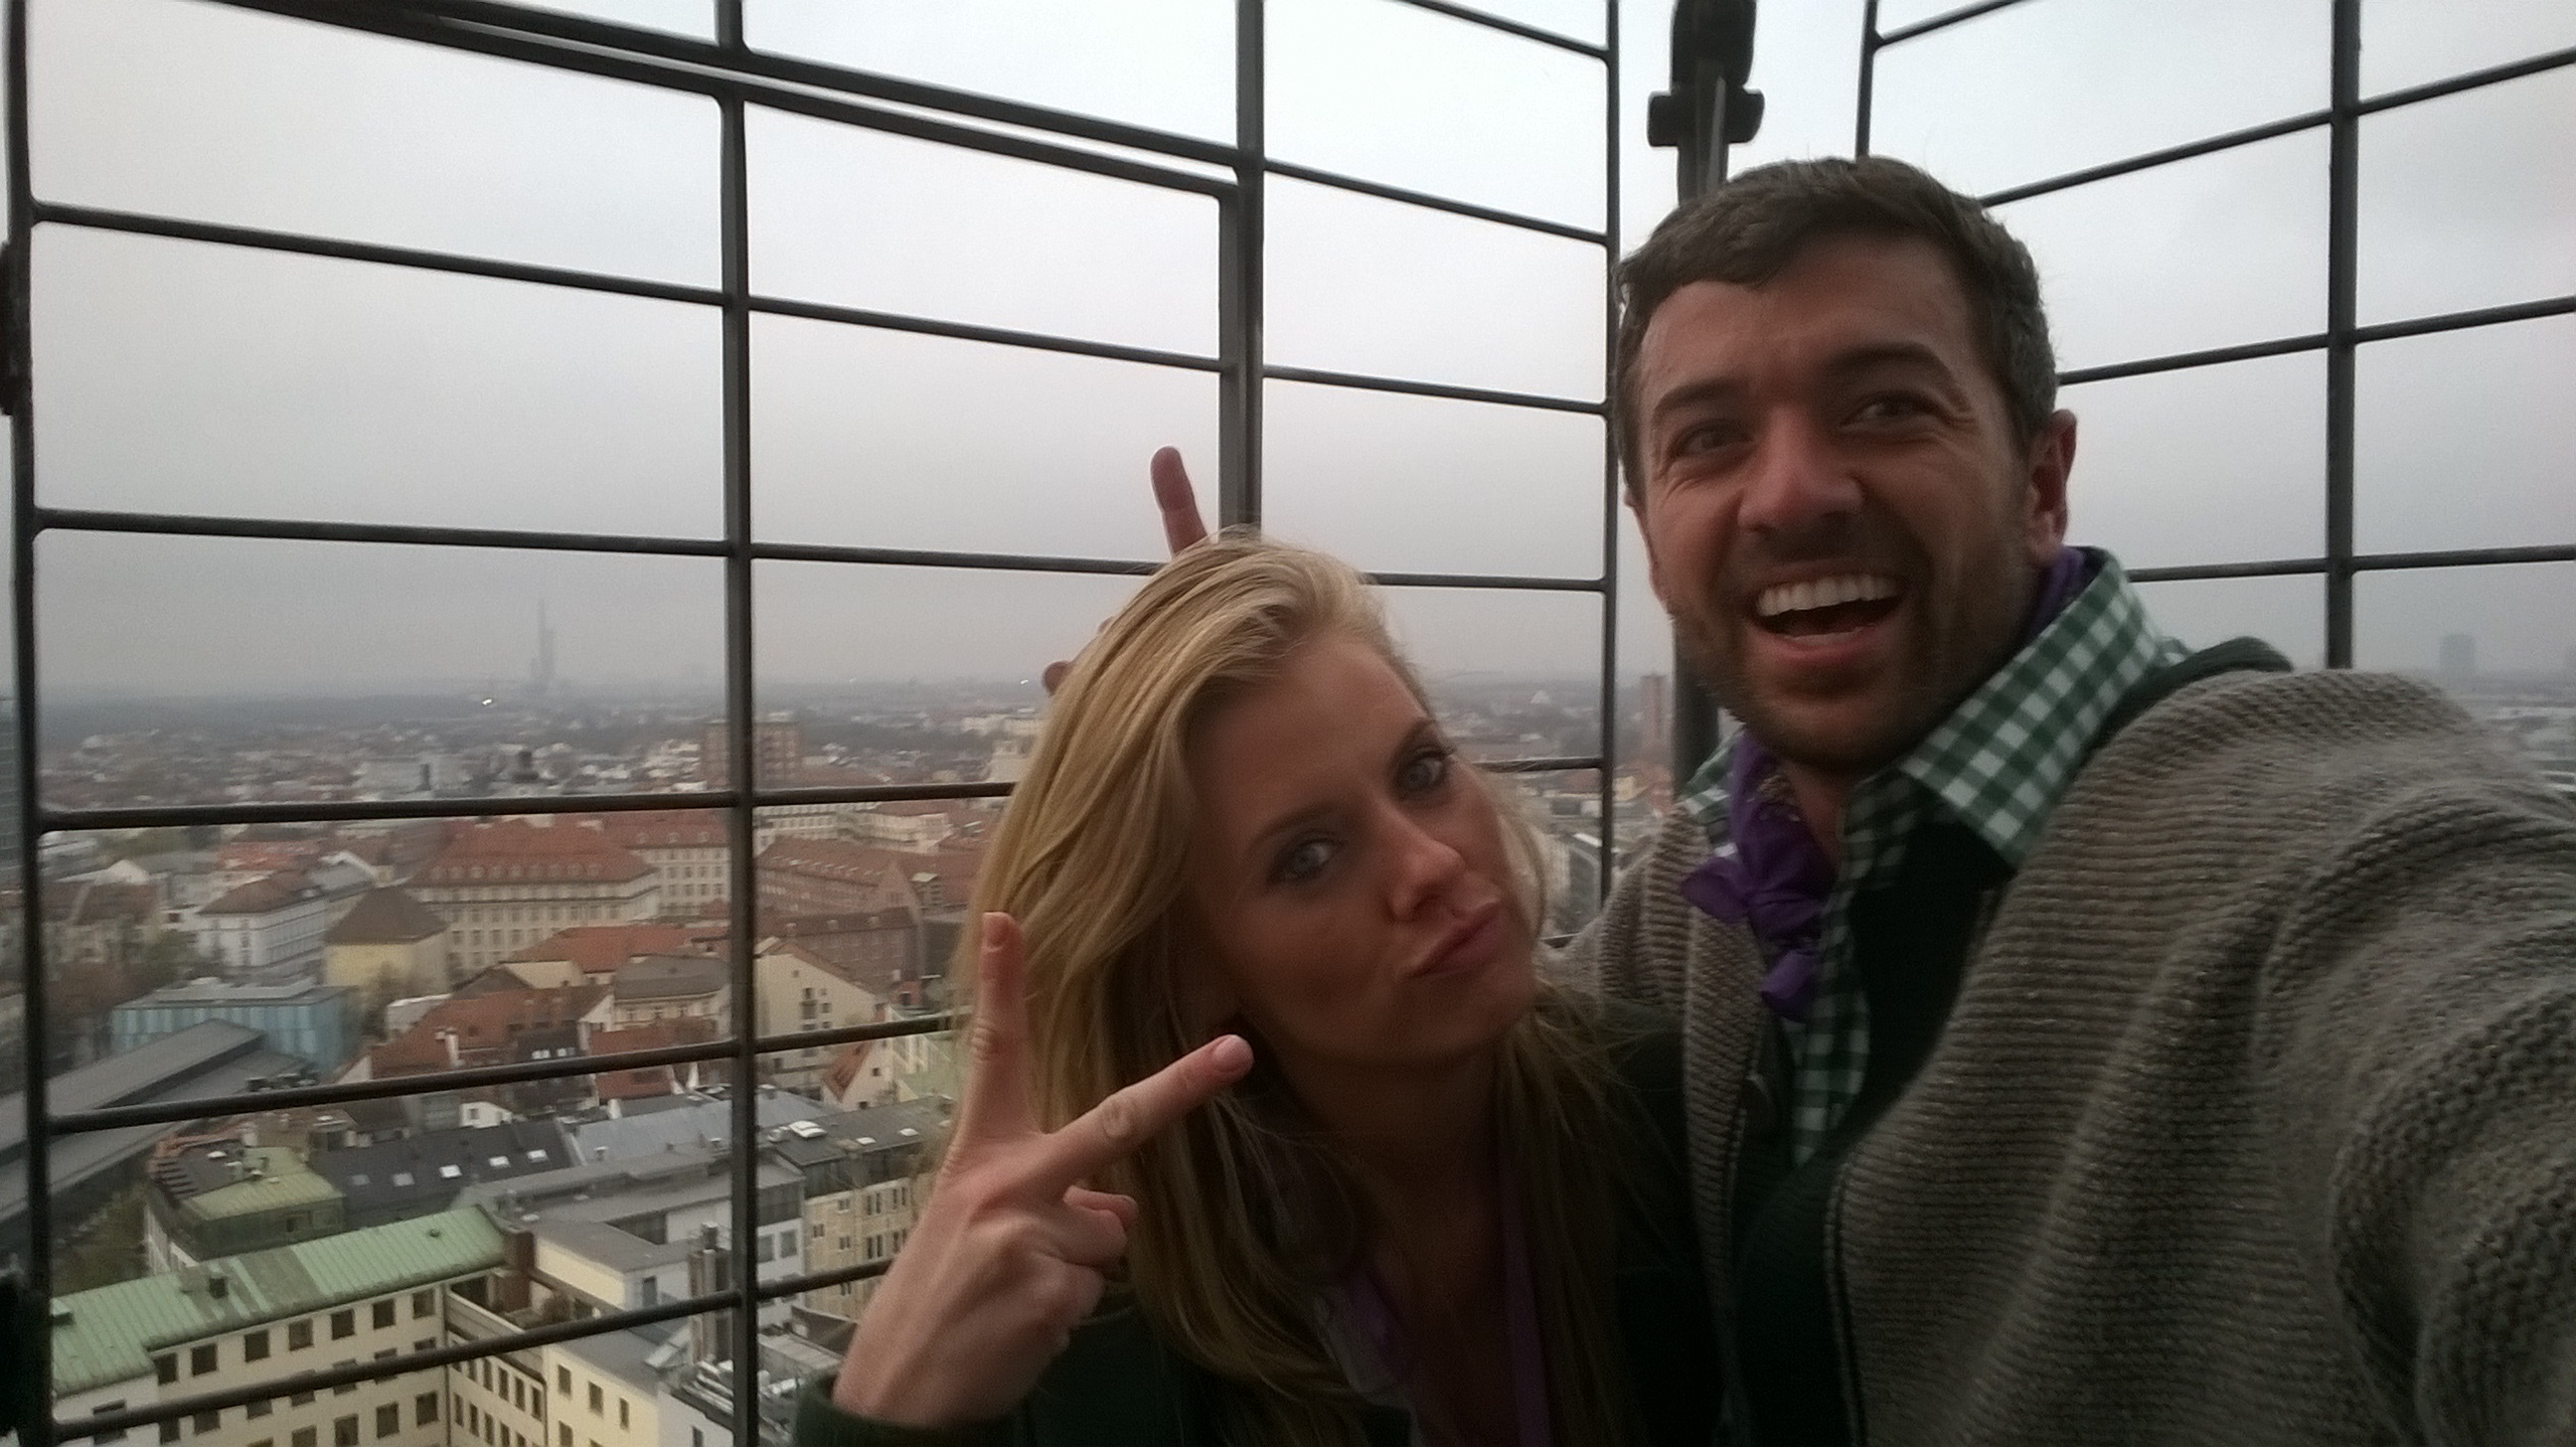 Tyler & Laura from such great heights